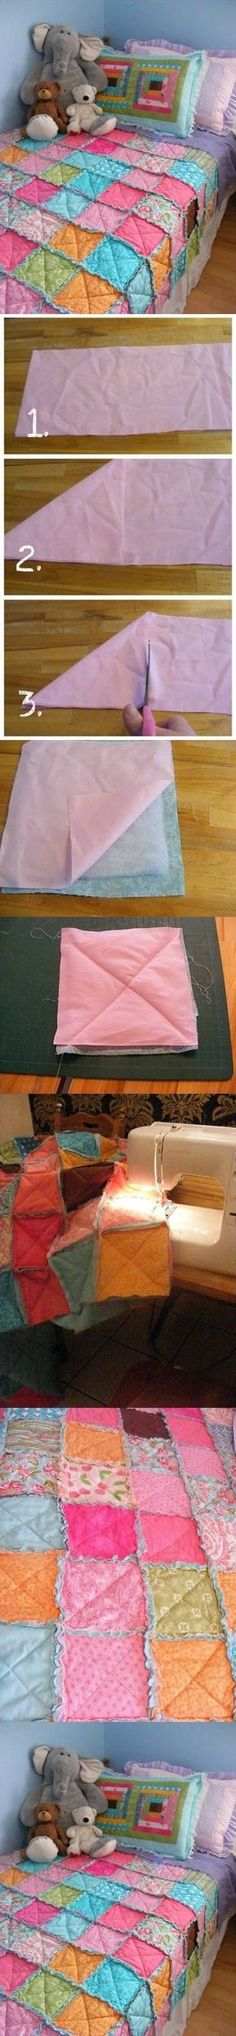 DIY Blanket Patchwork Technique Internet Tutorial: